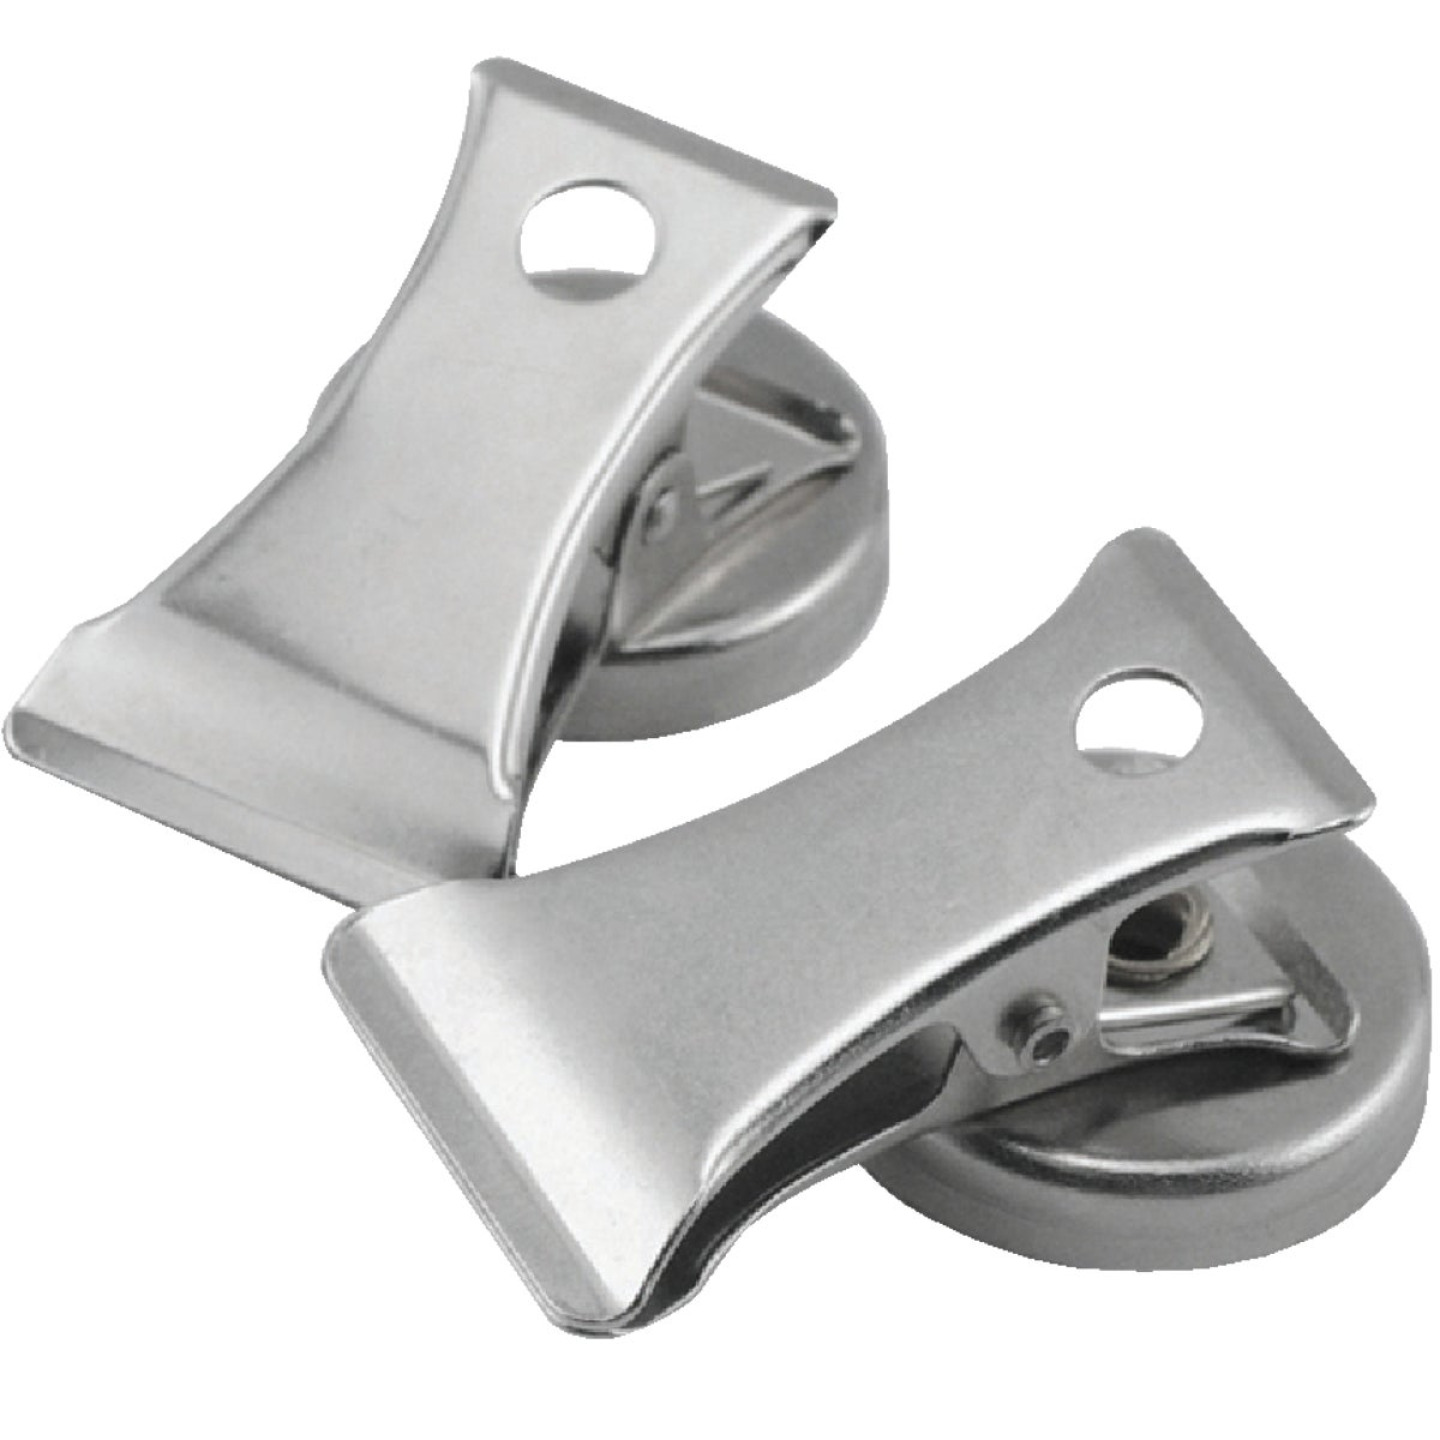 Master Magnetics 1 In. Dia. Chrome Magnetic Note Holder Clip (2-Pack) Image 1